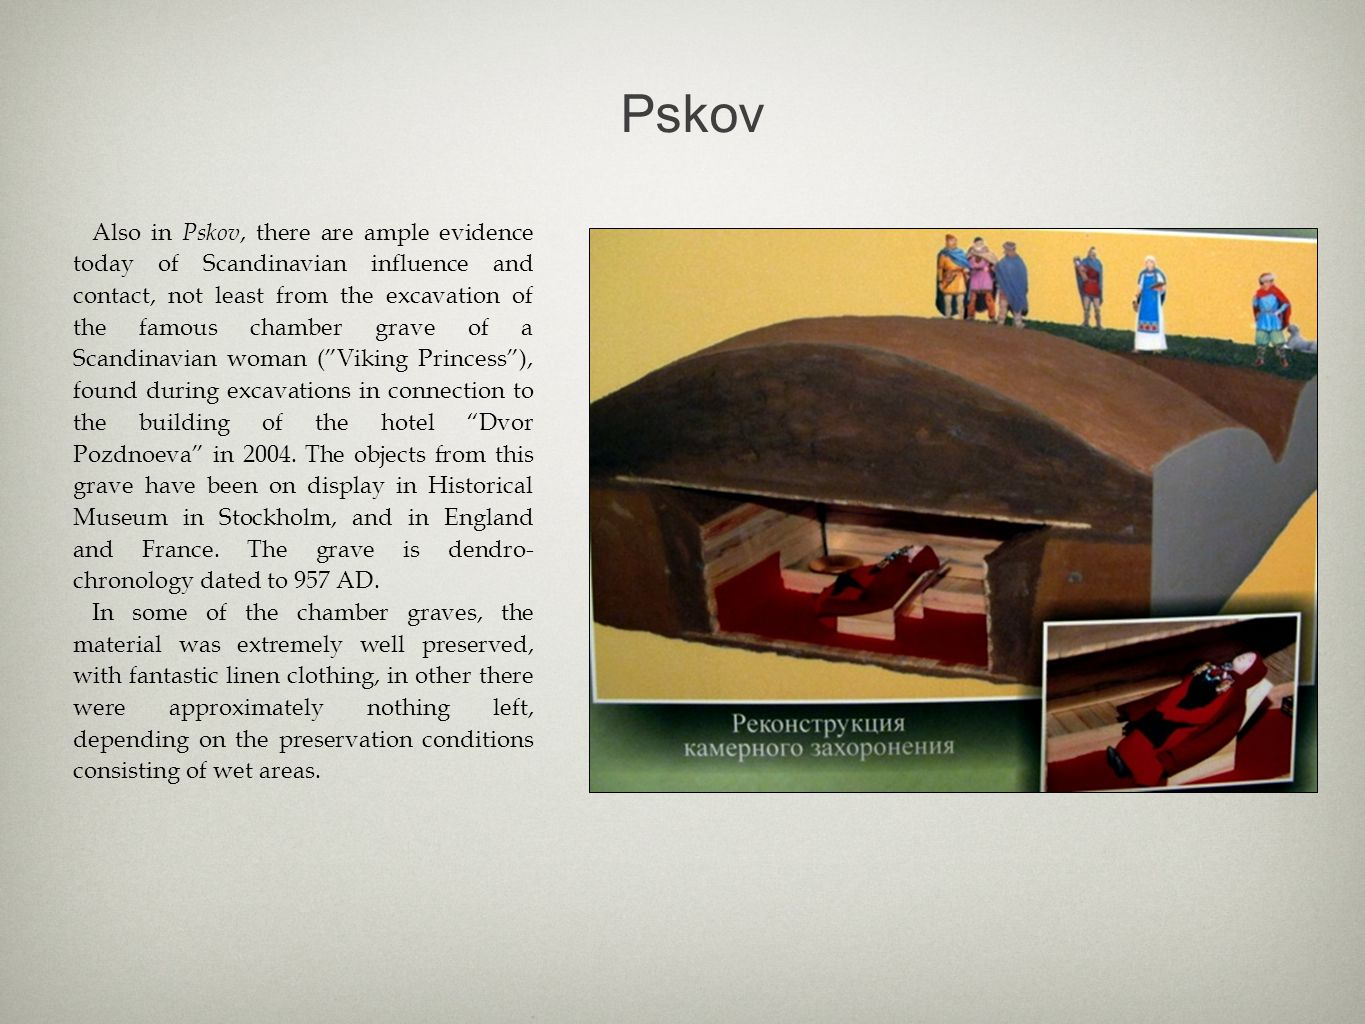 Pskov Also in Pskov, there are ample evidence today of Scandinavian influence and contact, not least from the excavation of the famous chamber grave of a Scandinavian woman ( Viking Princess ), found during excavations in connection to the building of the hotel Dvor Pozdnoeva in 2004.